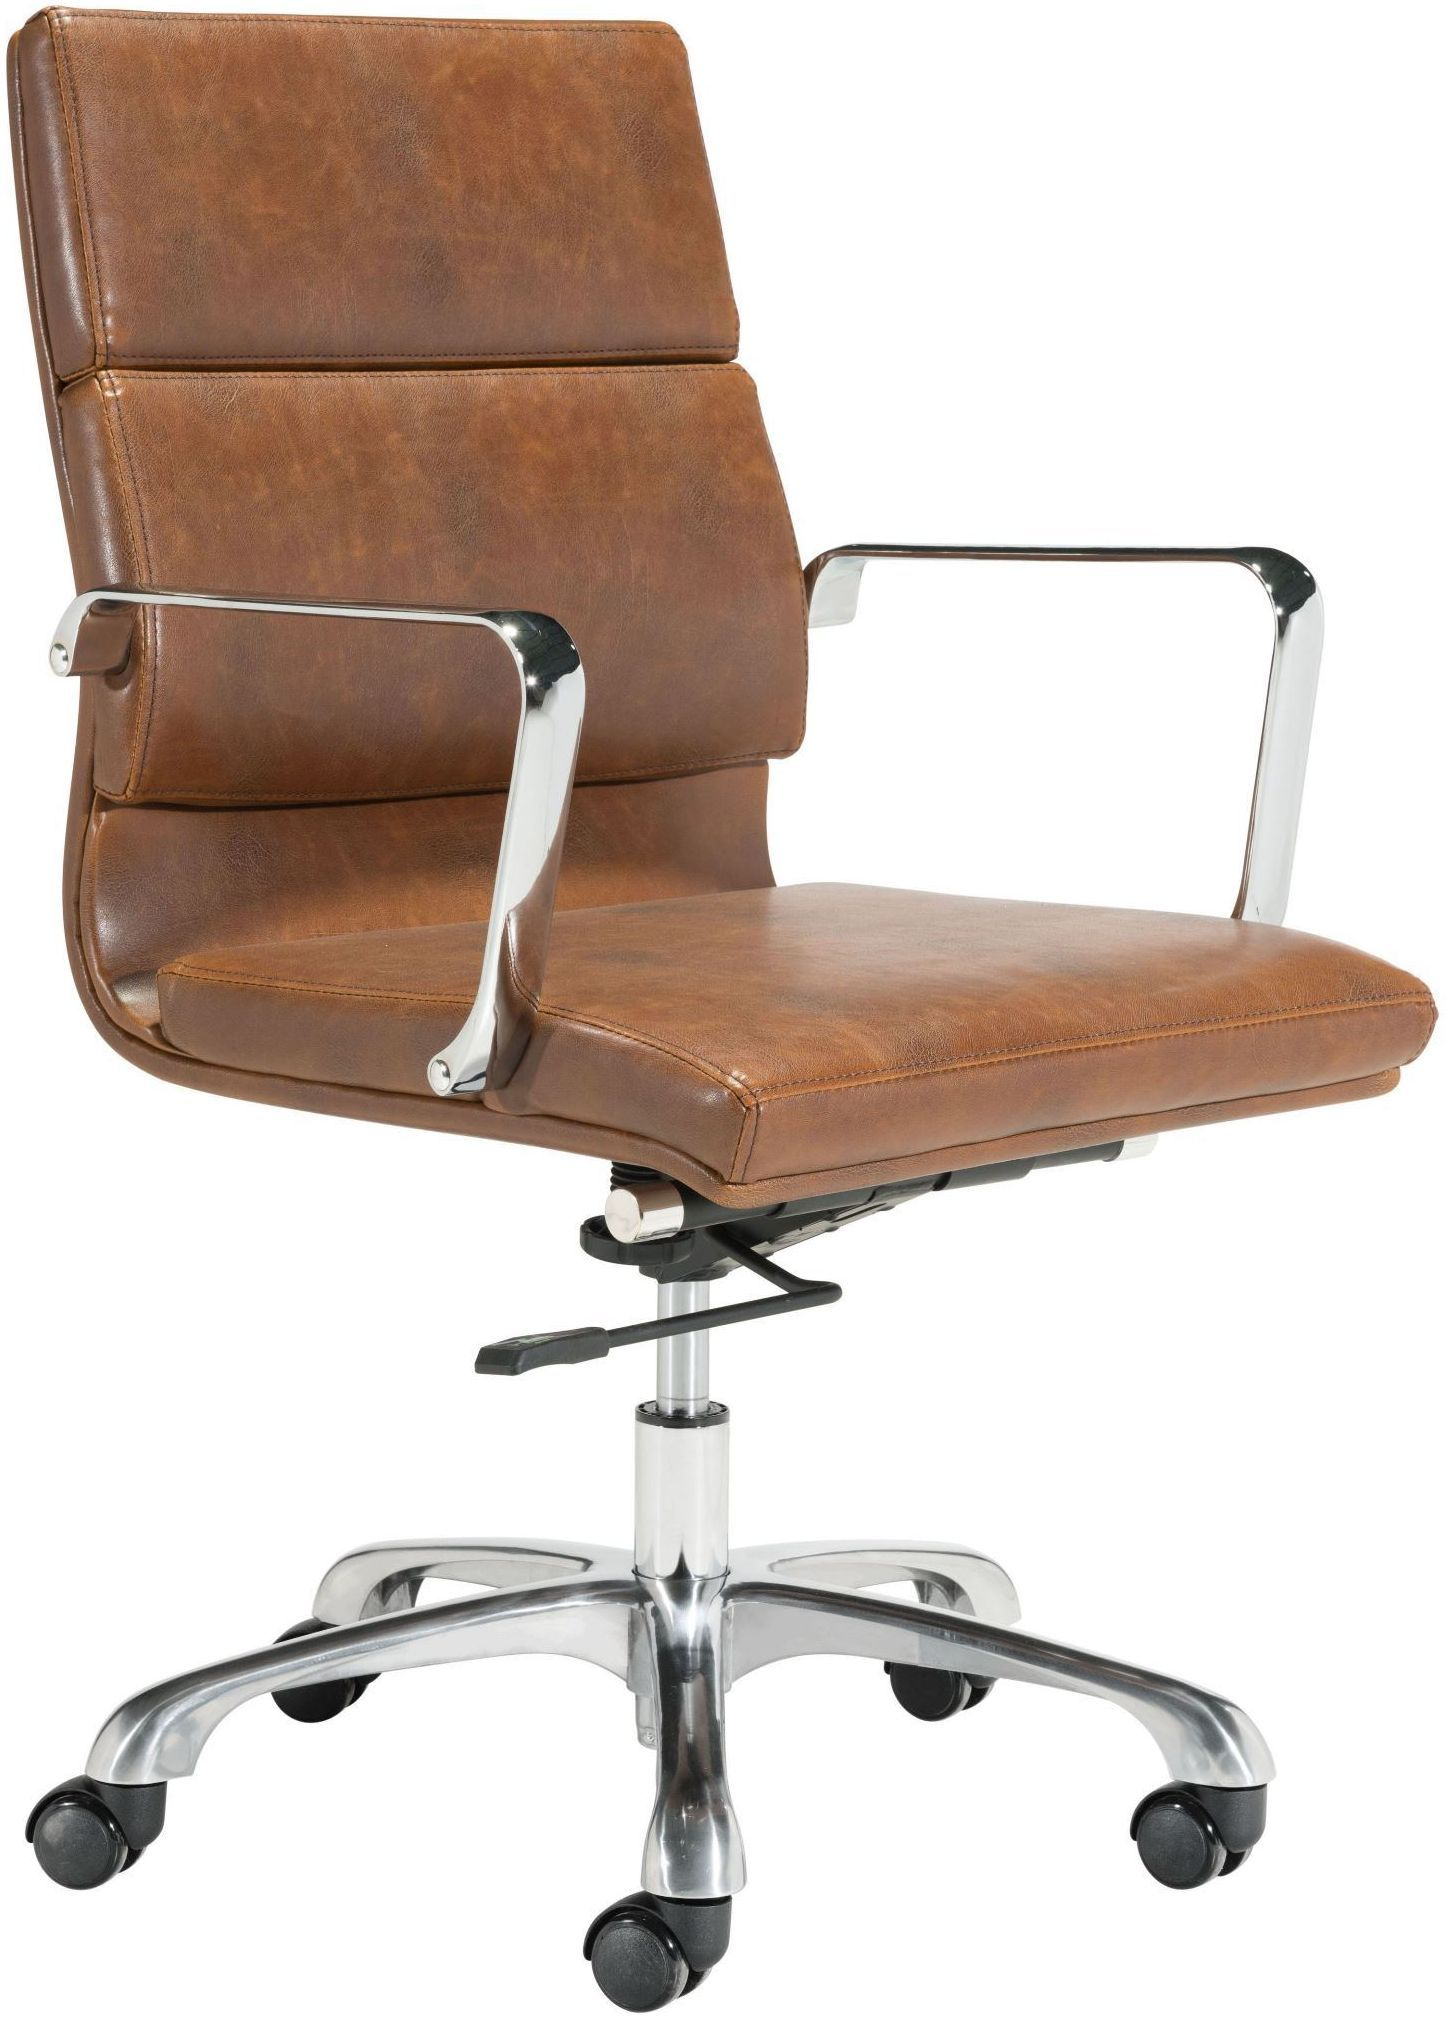 Ithaca Vintage Brown Office Chair Adjustable office